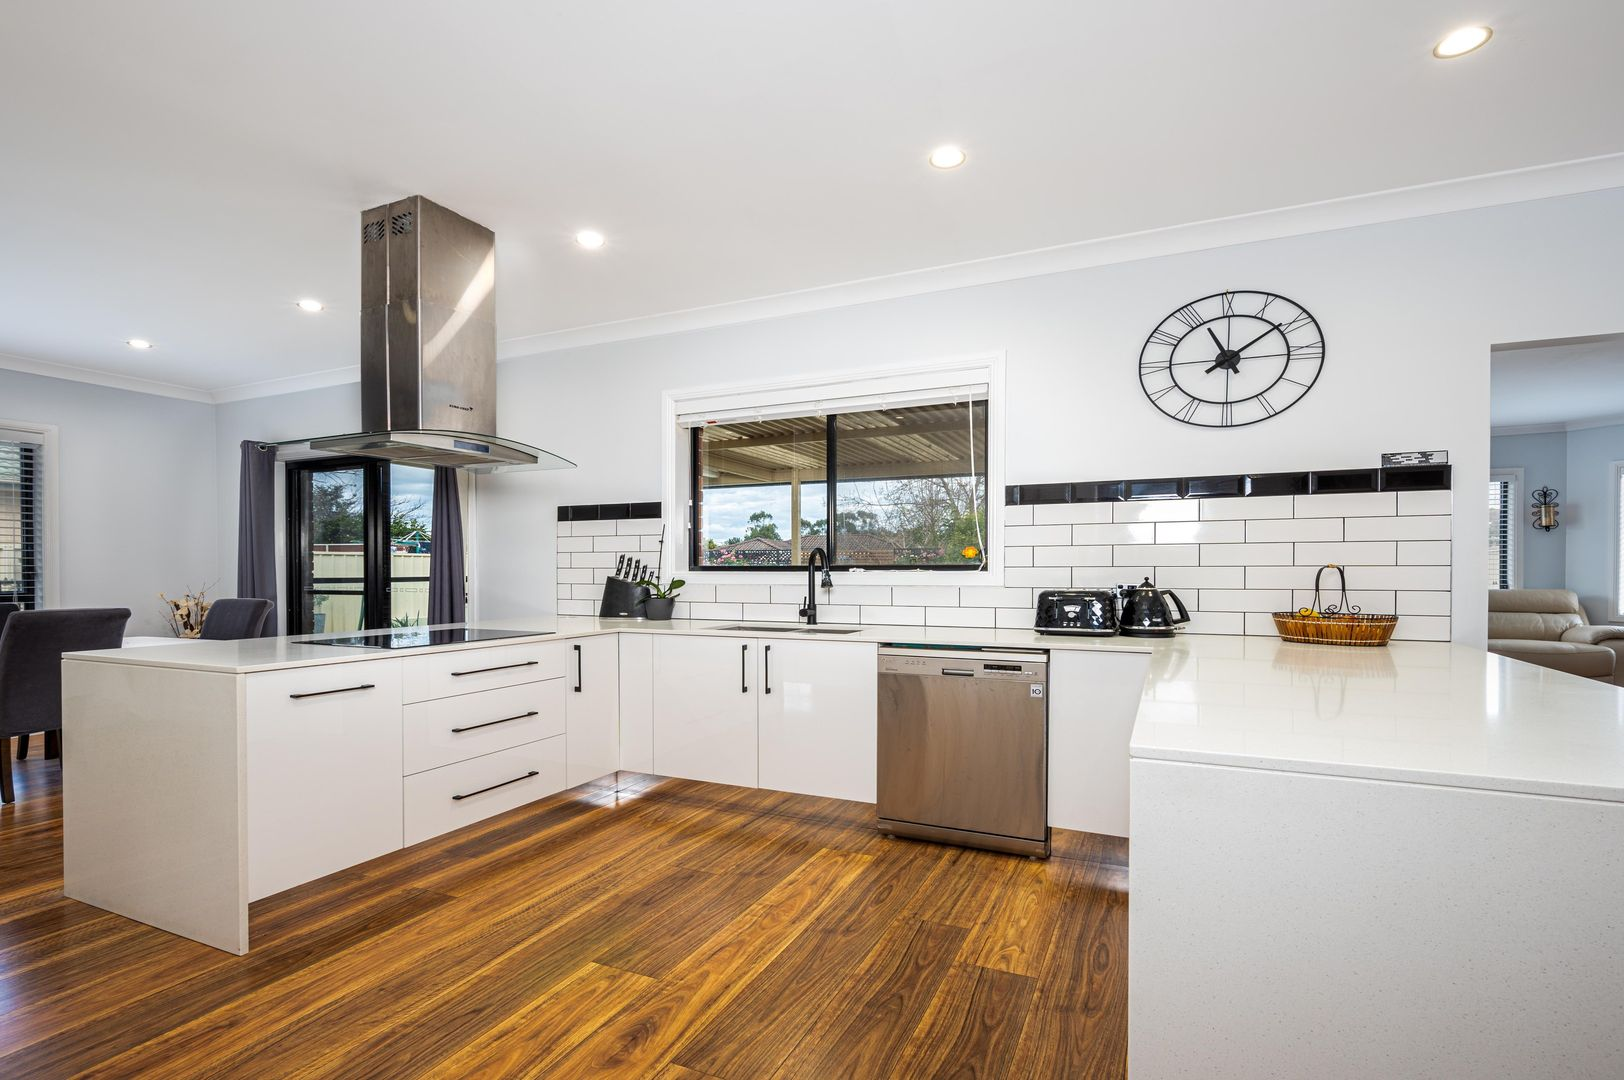 15 Hereford Way, Picton NSW 2571, Image 1